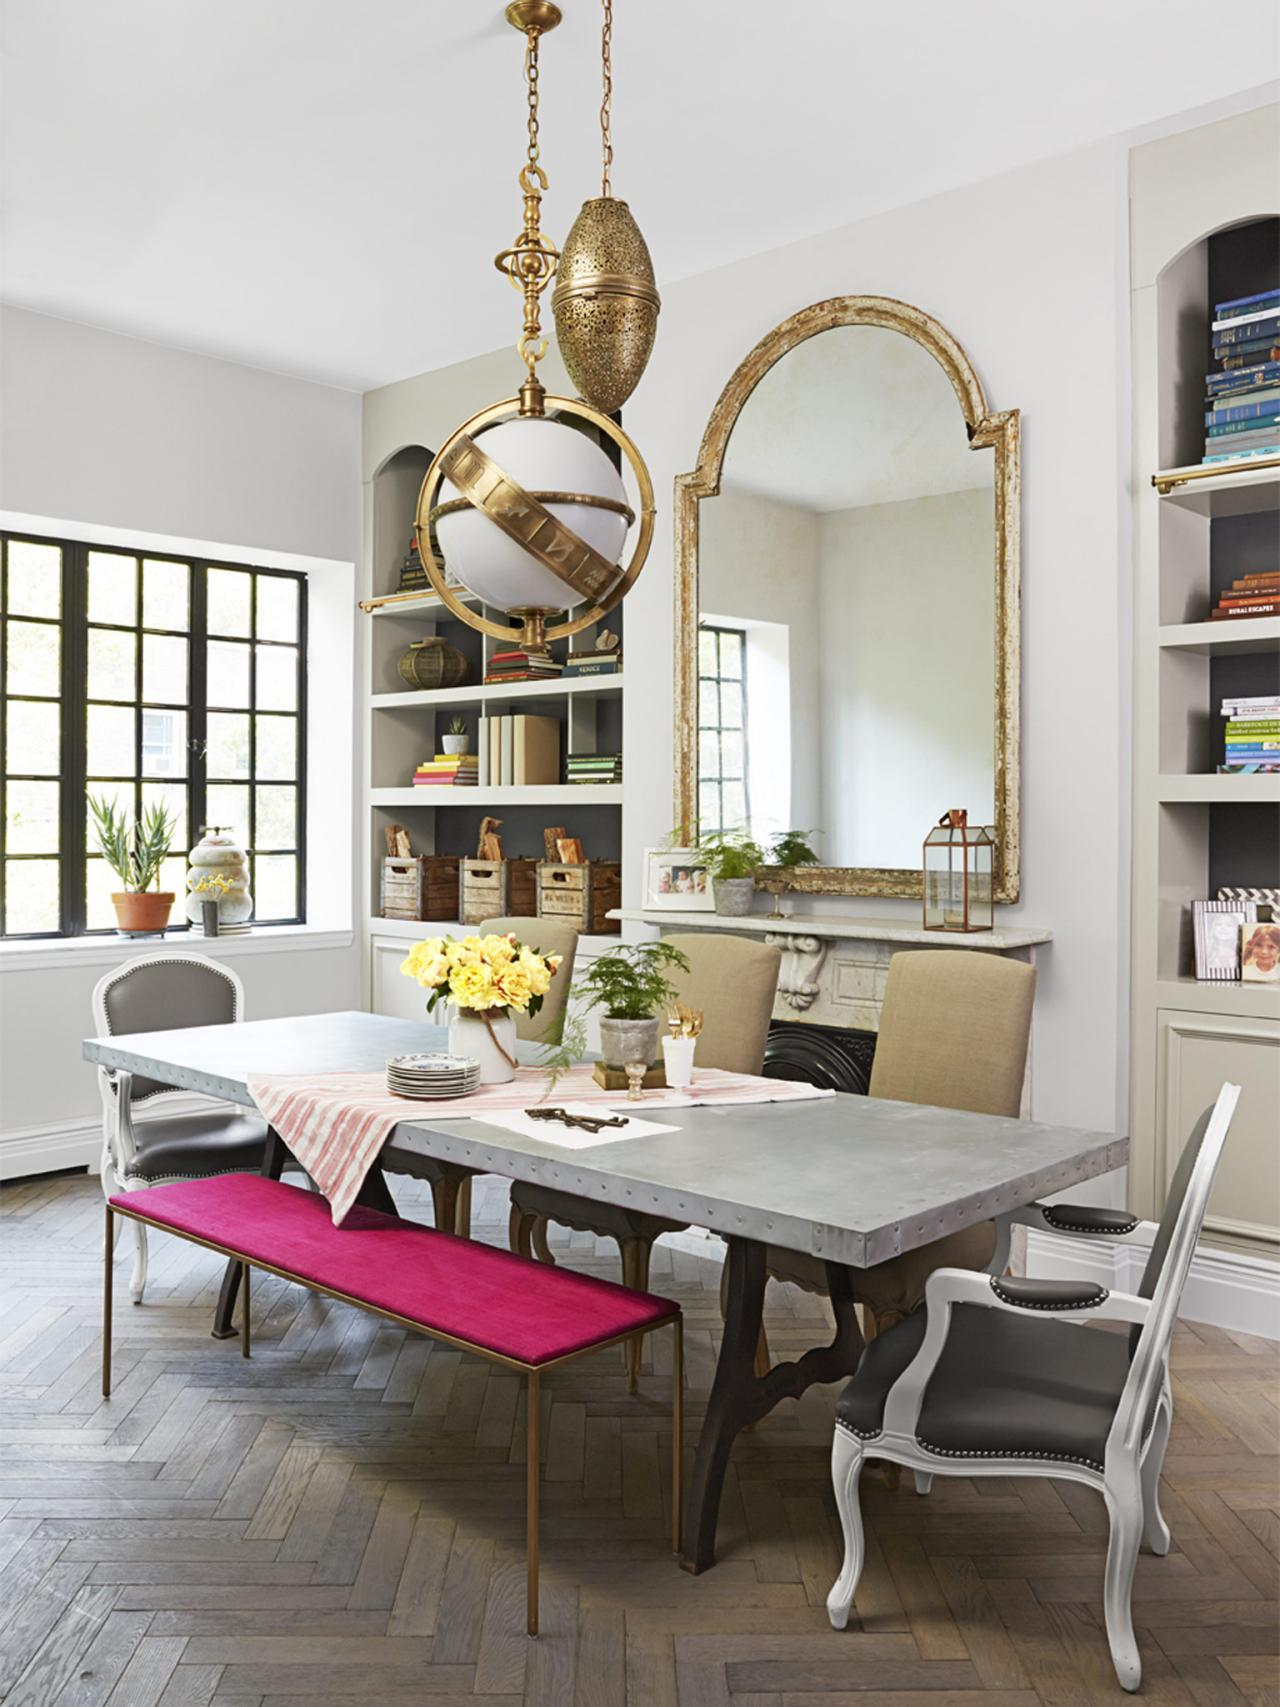 Genevieve gorder 39 s nyc apartment renovation genevieve 39 s for Dining room renovation